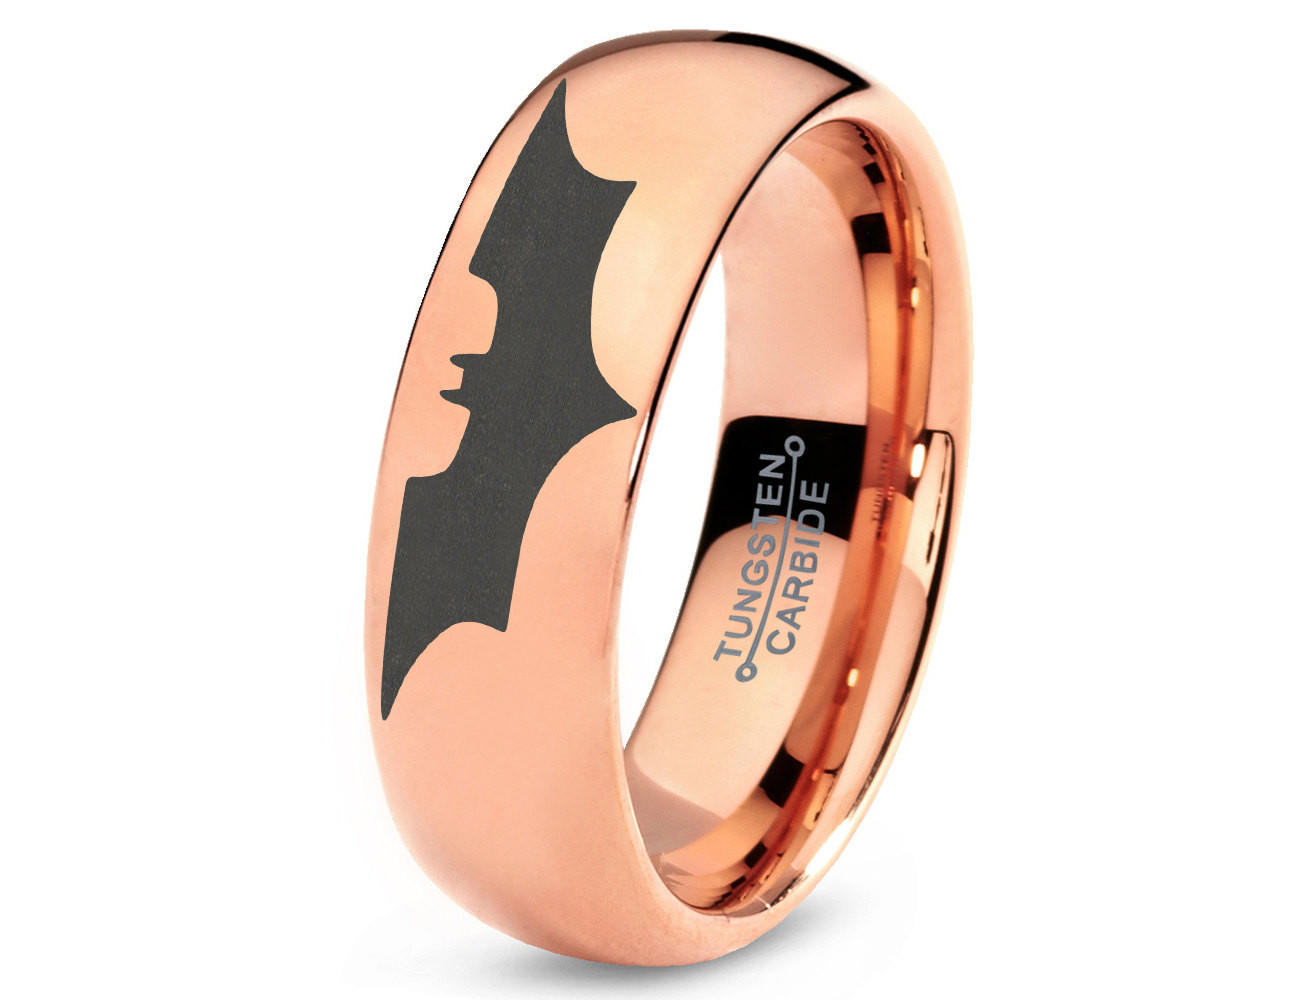 batman tungsten wedding band ring mens womens domed polished 18k rose gold fanatic geek anniversary engagement captain america wedding band Full size